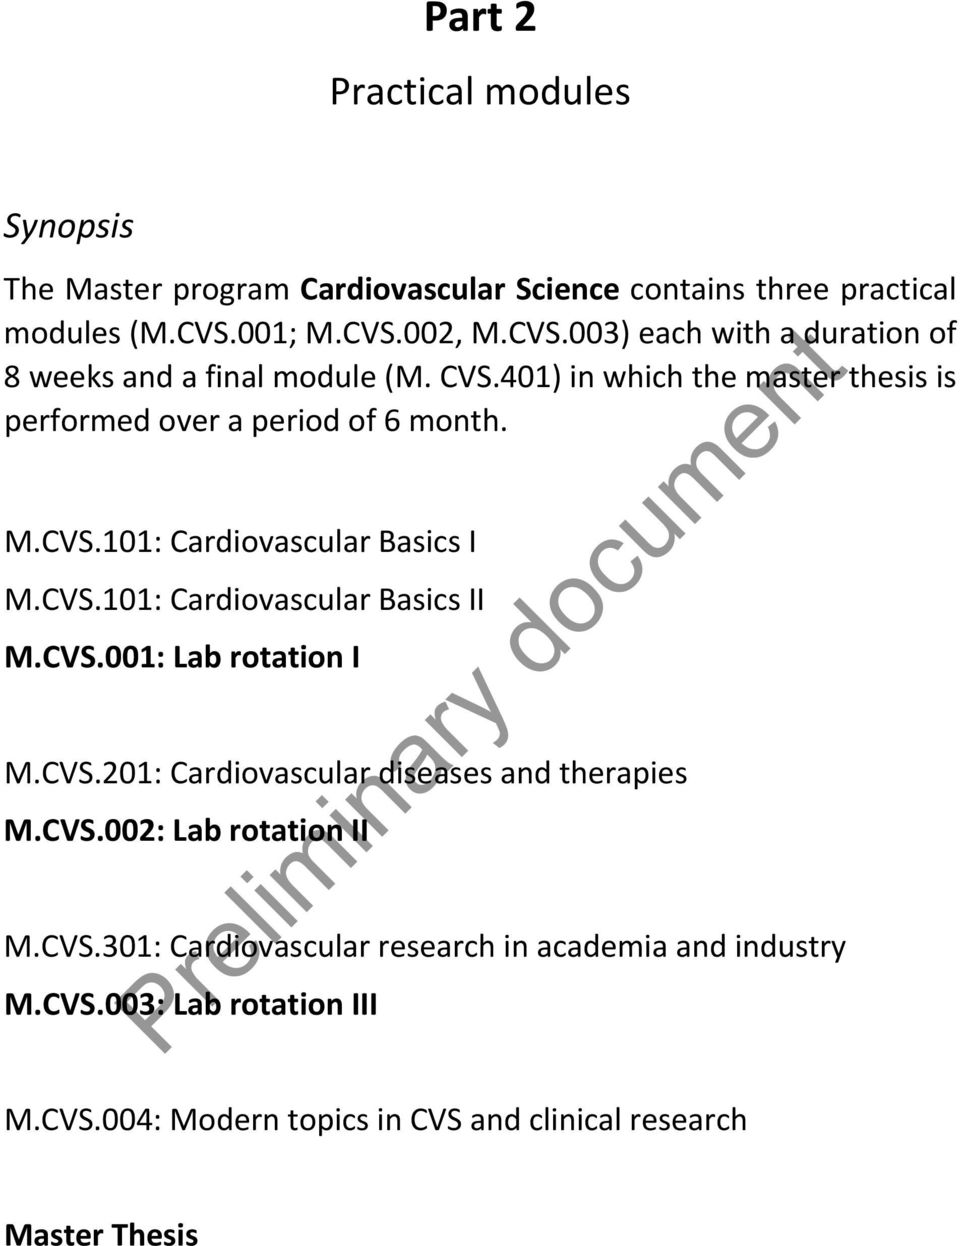 401) in which the master thesis is performed over a period of 6 month. M.CVS.101: Cardiovascular Basics I M.CVS.101: Cardiovascular Basics II M.CVS.001: Lab rotation I M.